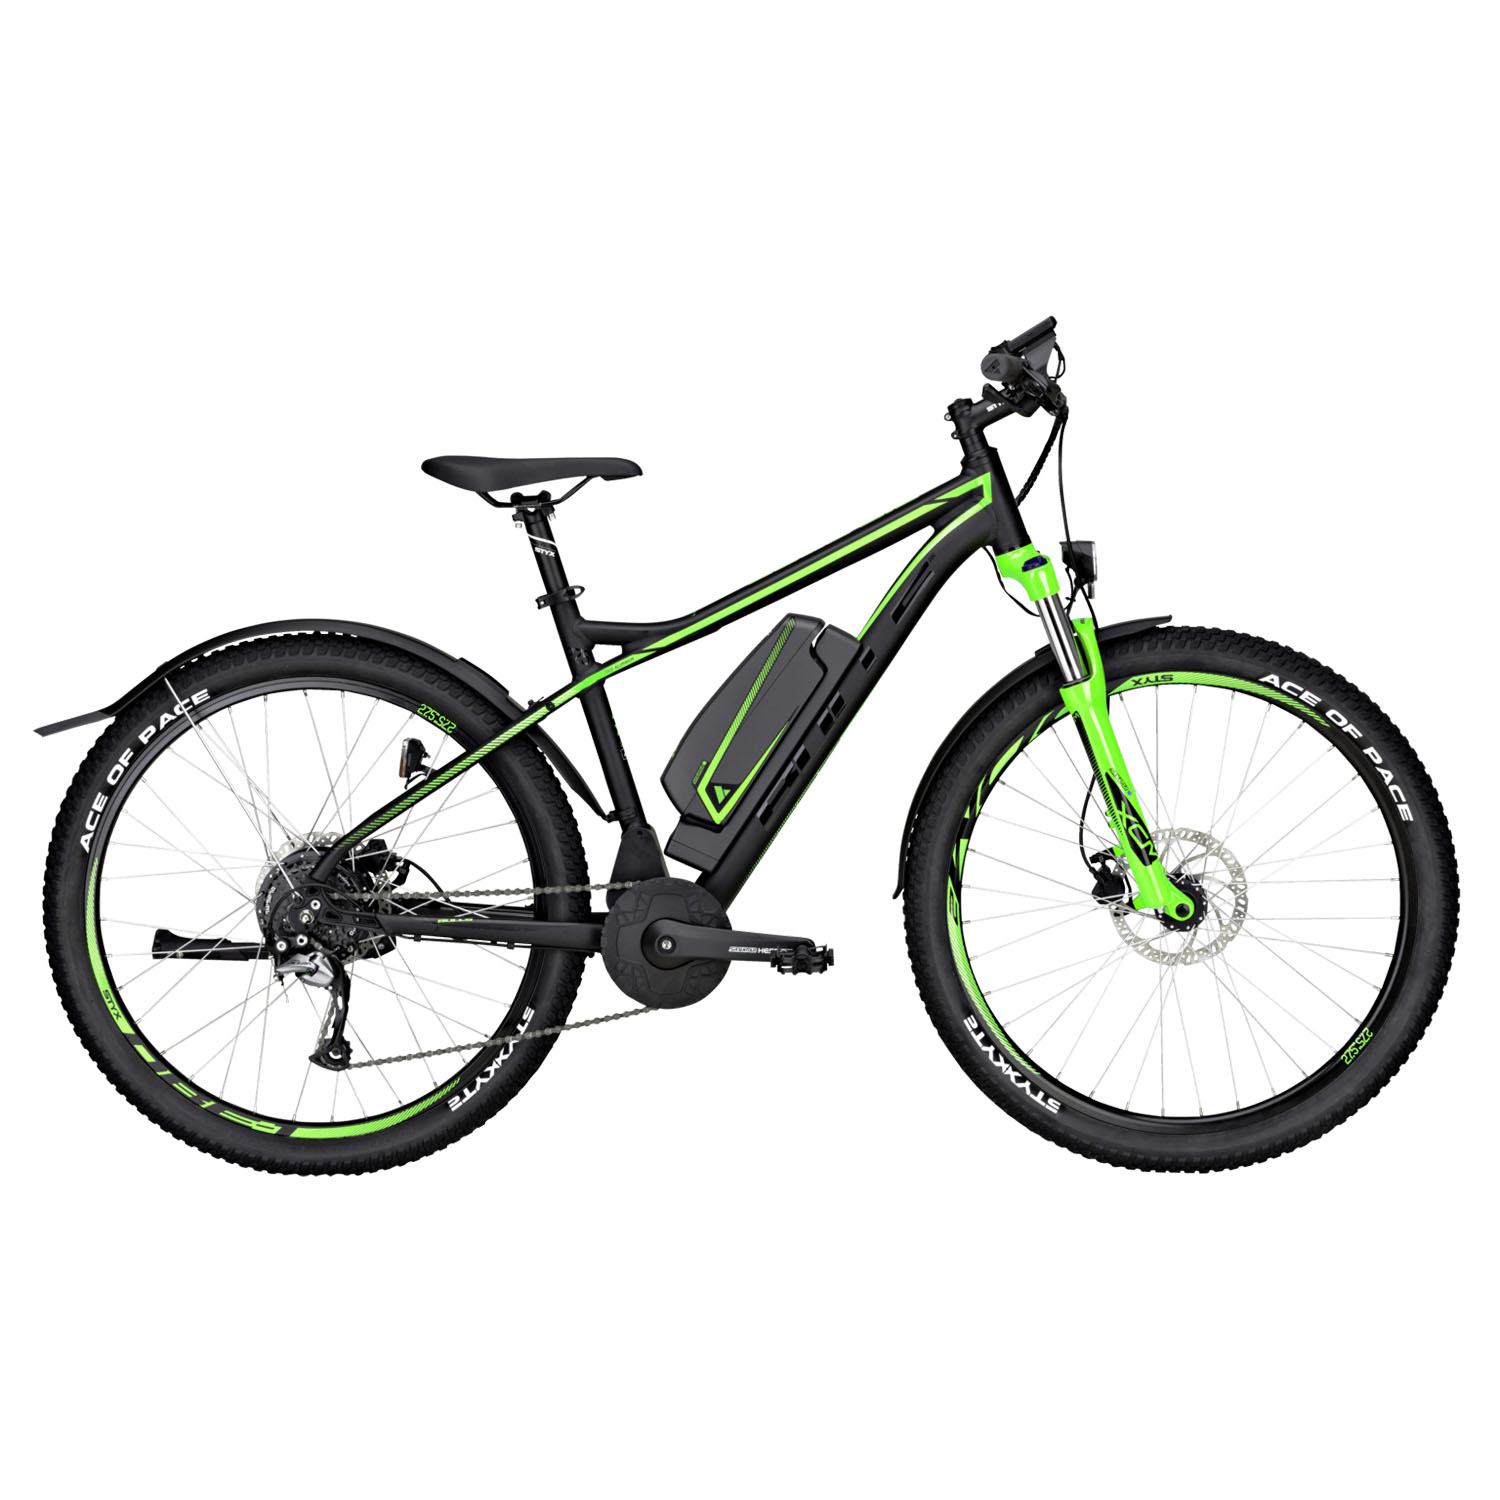 stadler mountainbike